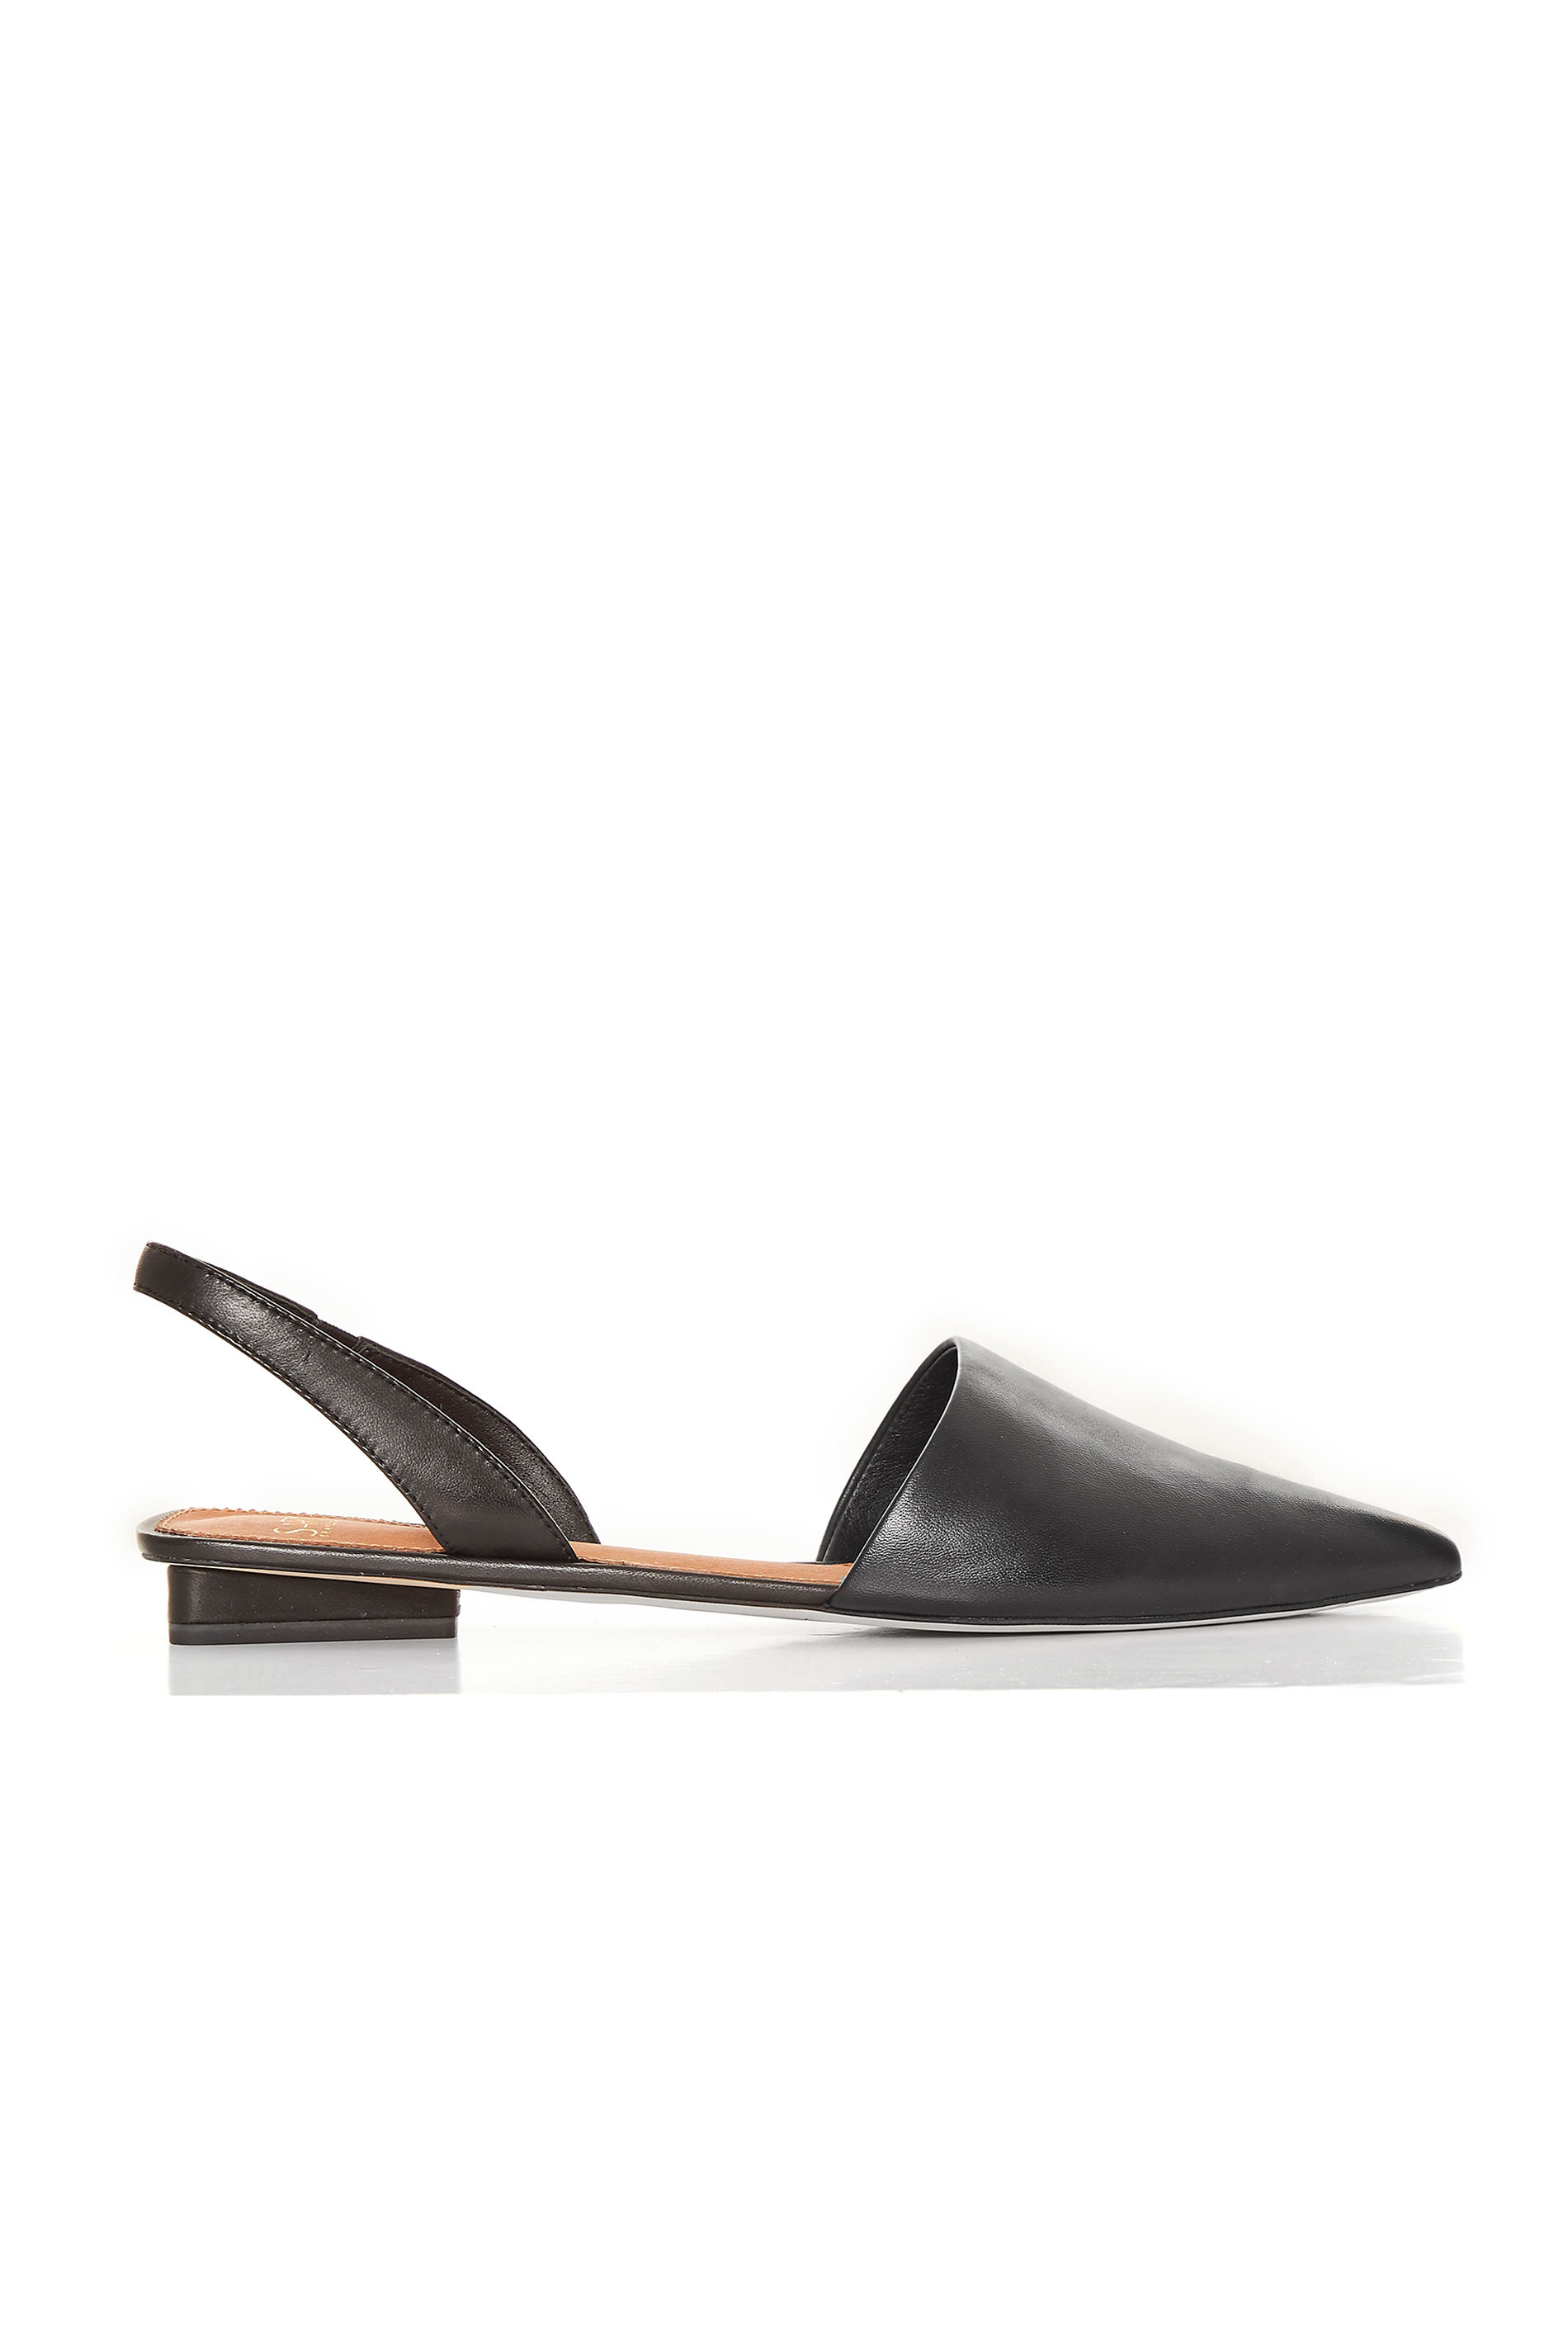 SARTO Black Slingback Graydon Sandals